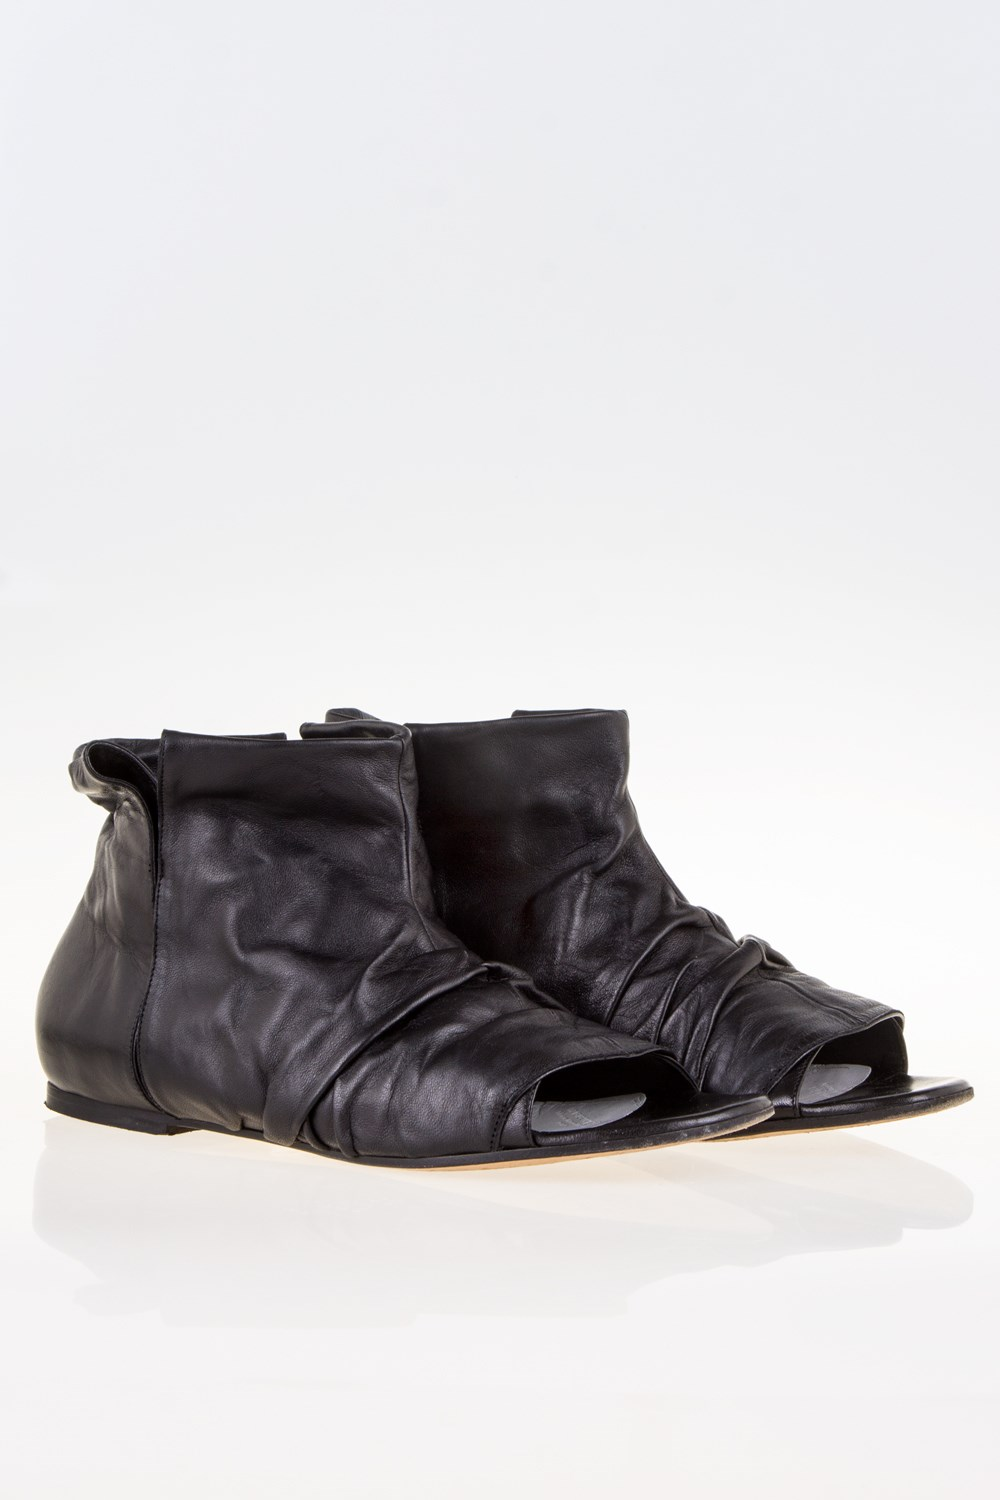 Black Leather Open-Toe Booties / Size